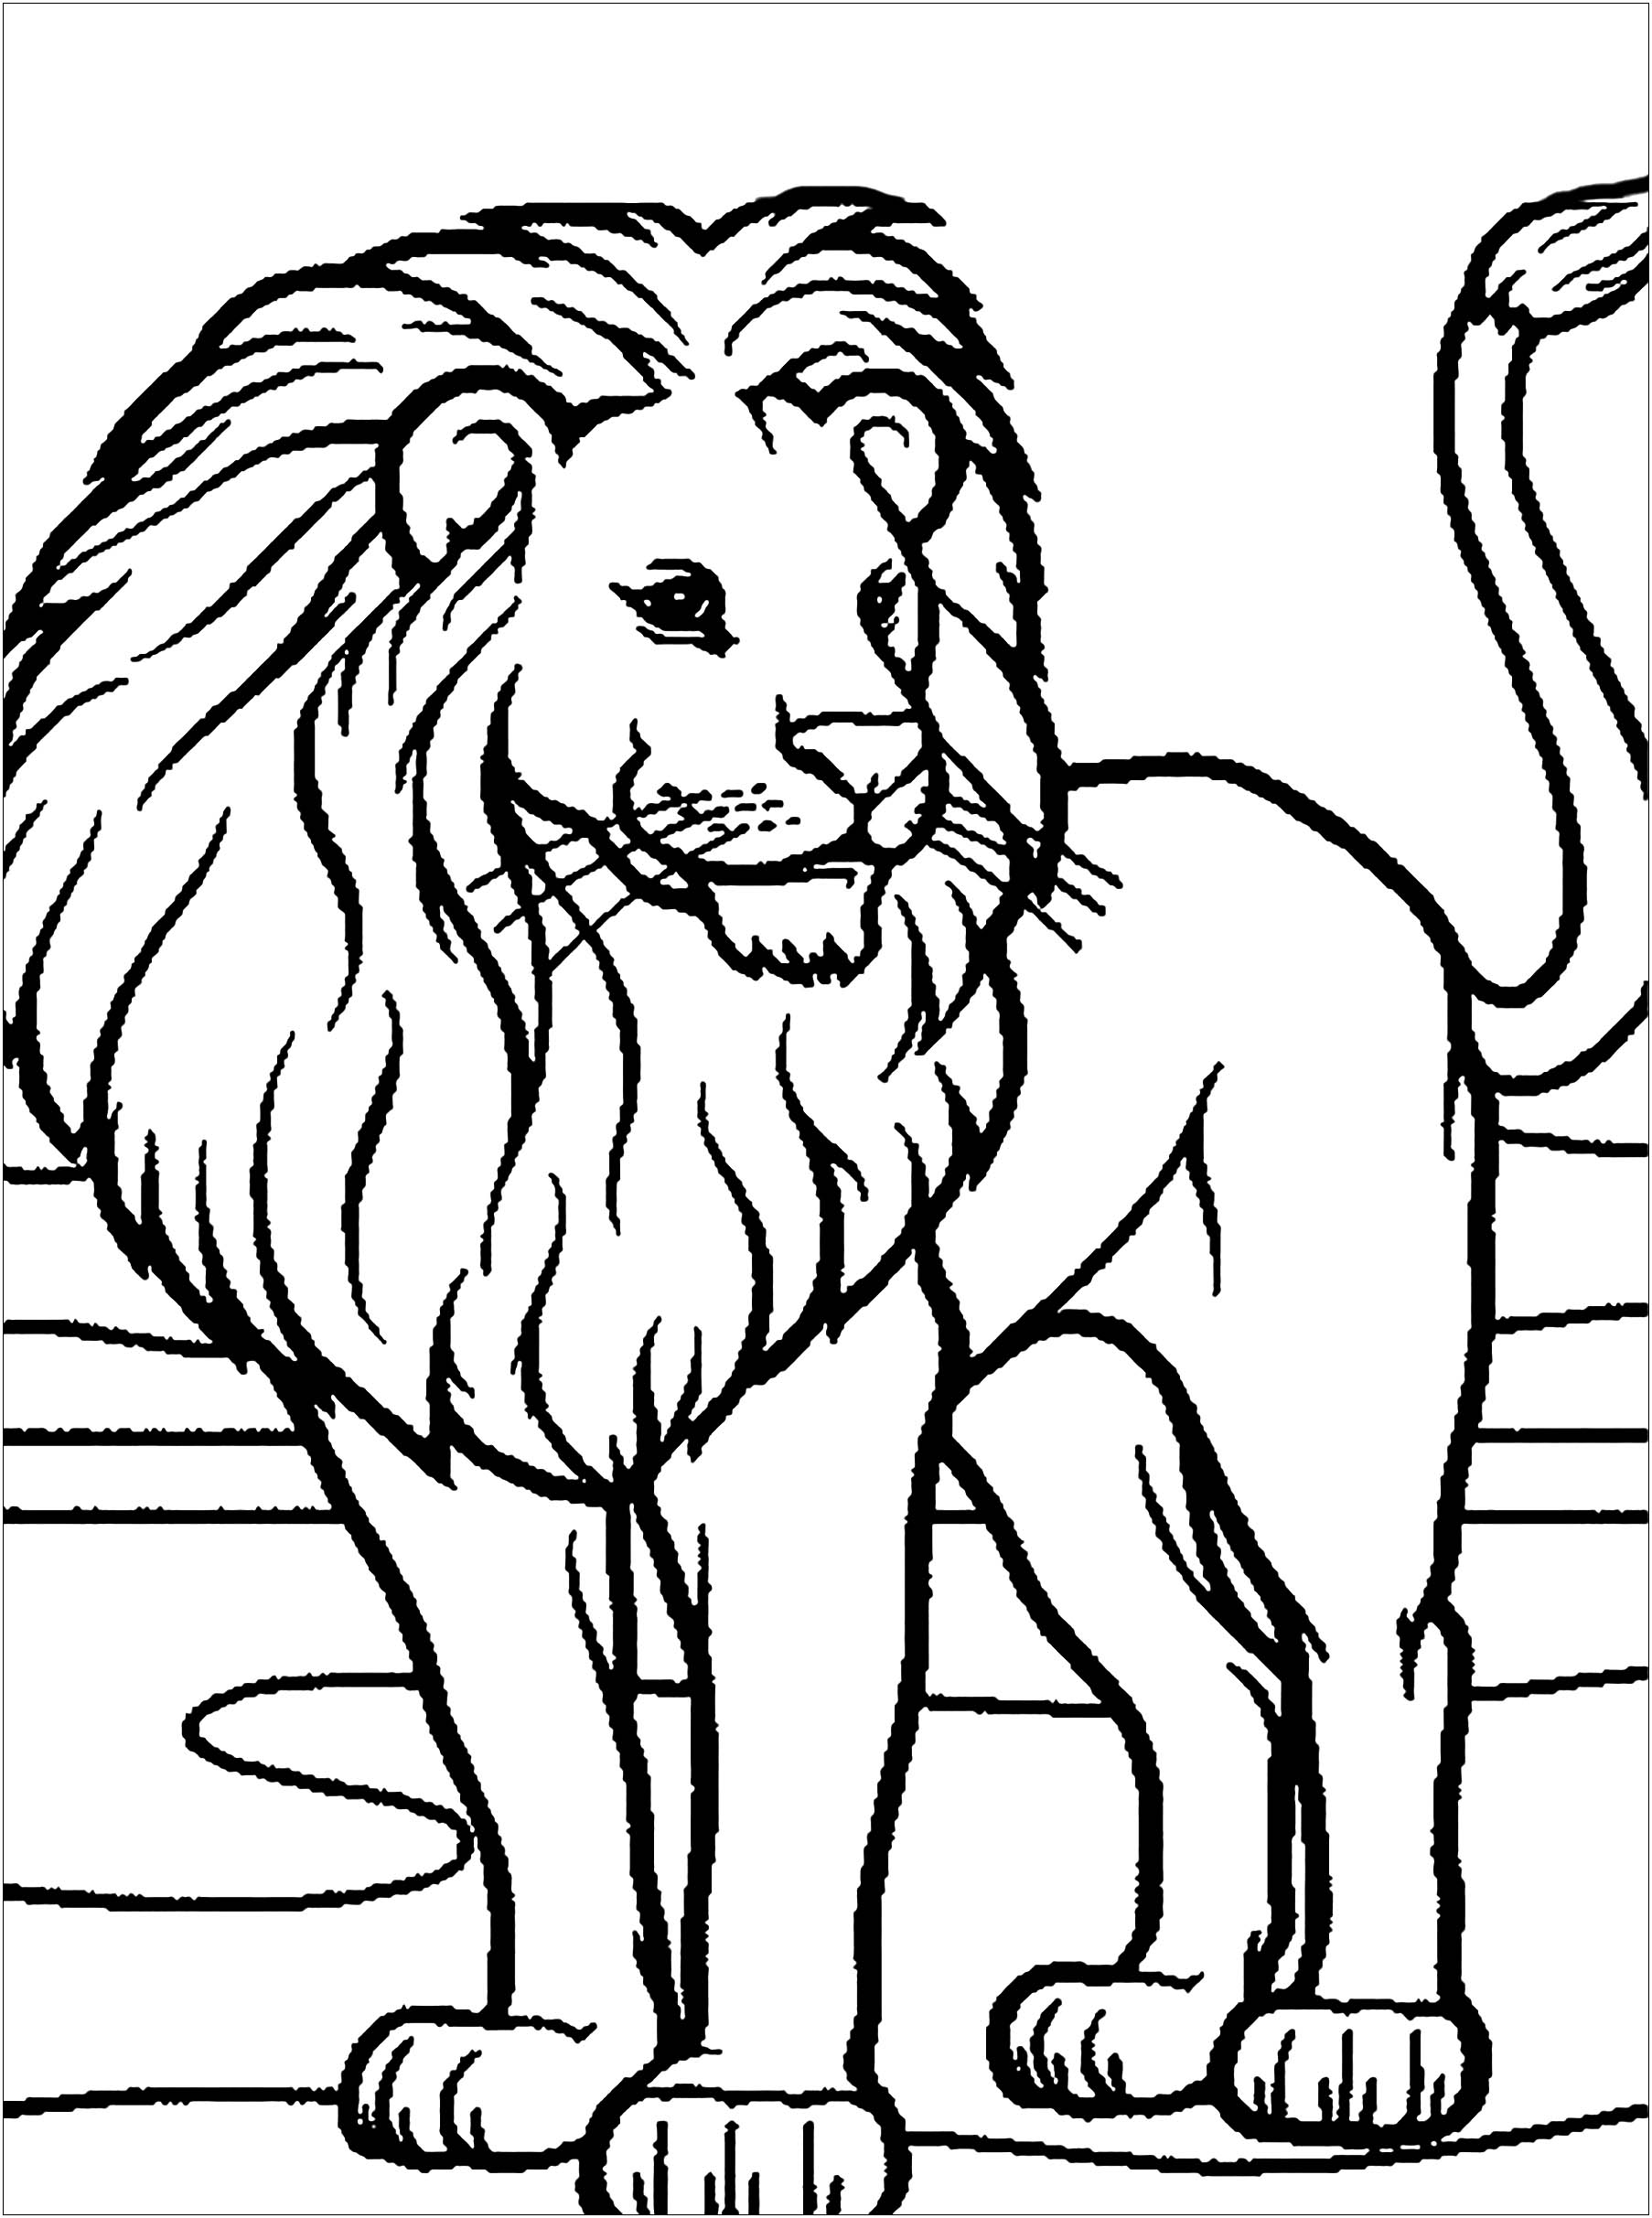 picture of lion coloring page lion coloring pages clipart and other free printable page coloring lion picture of